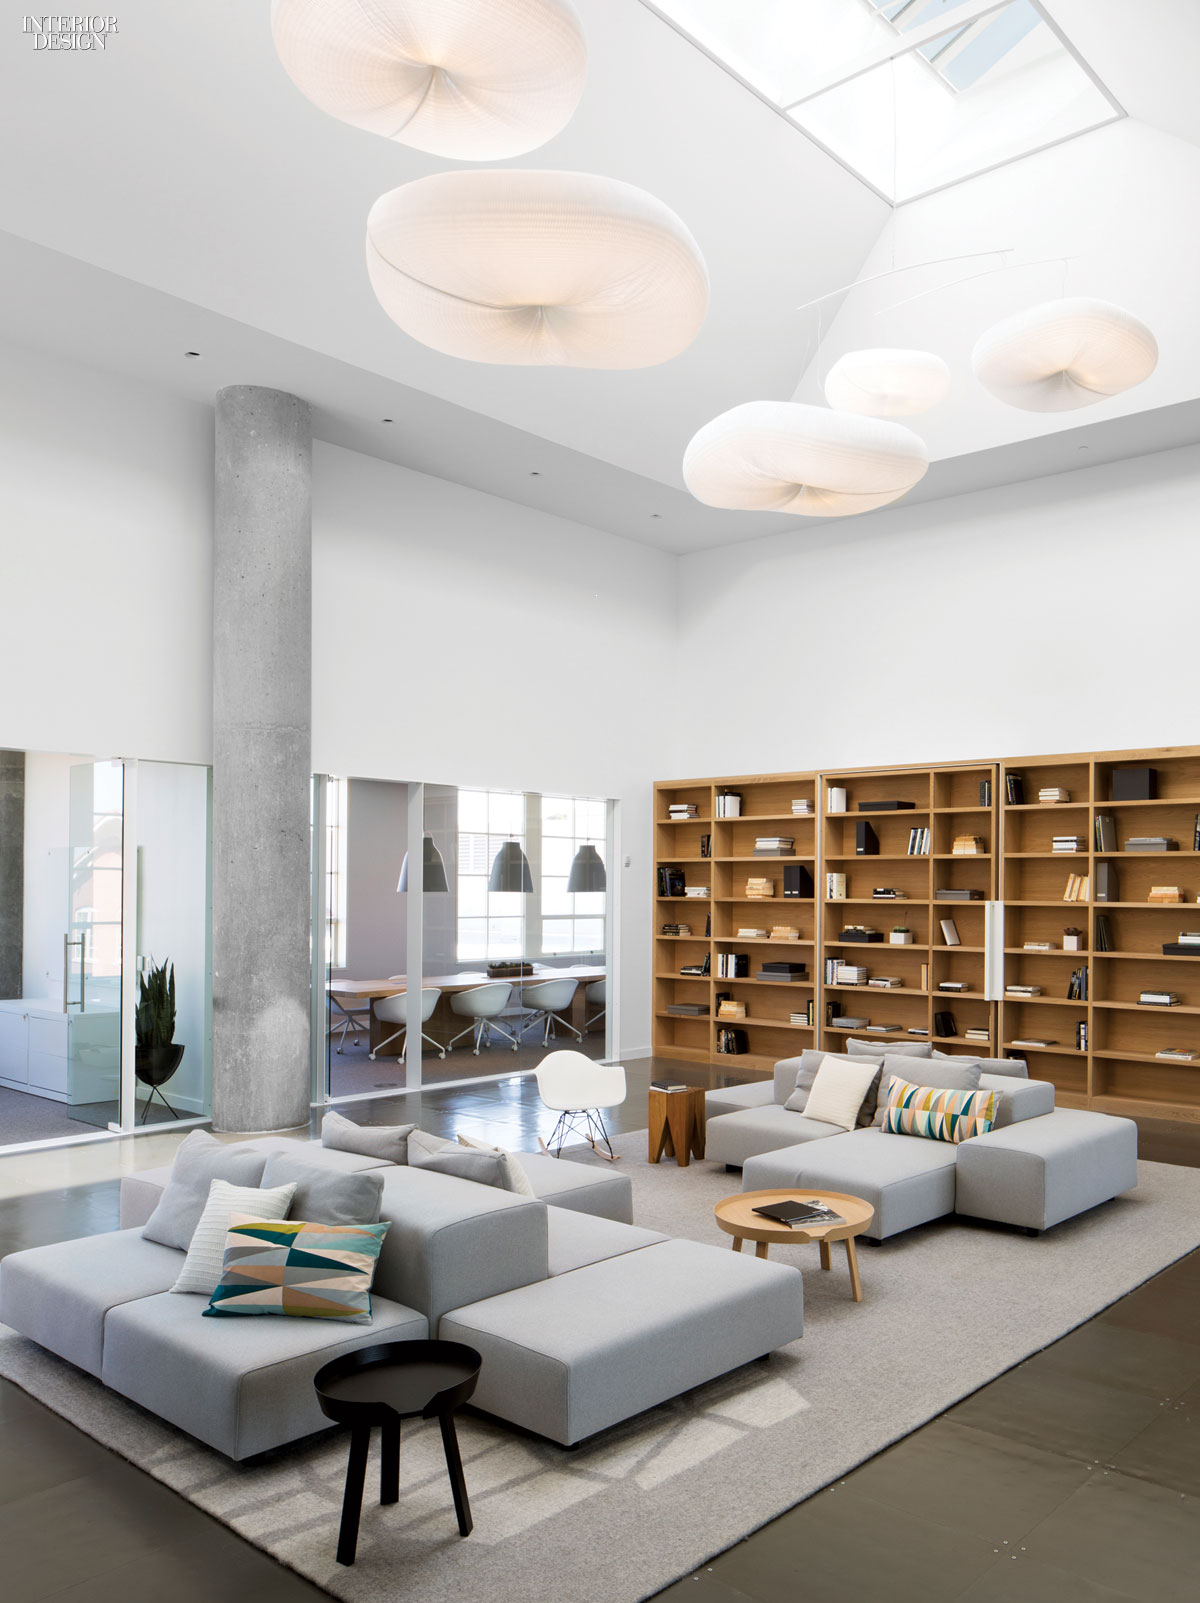 2014 boy winner small corporate office for Corporate interior design